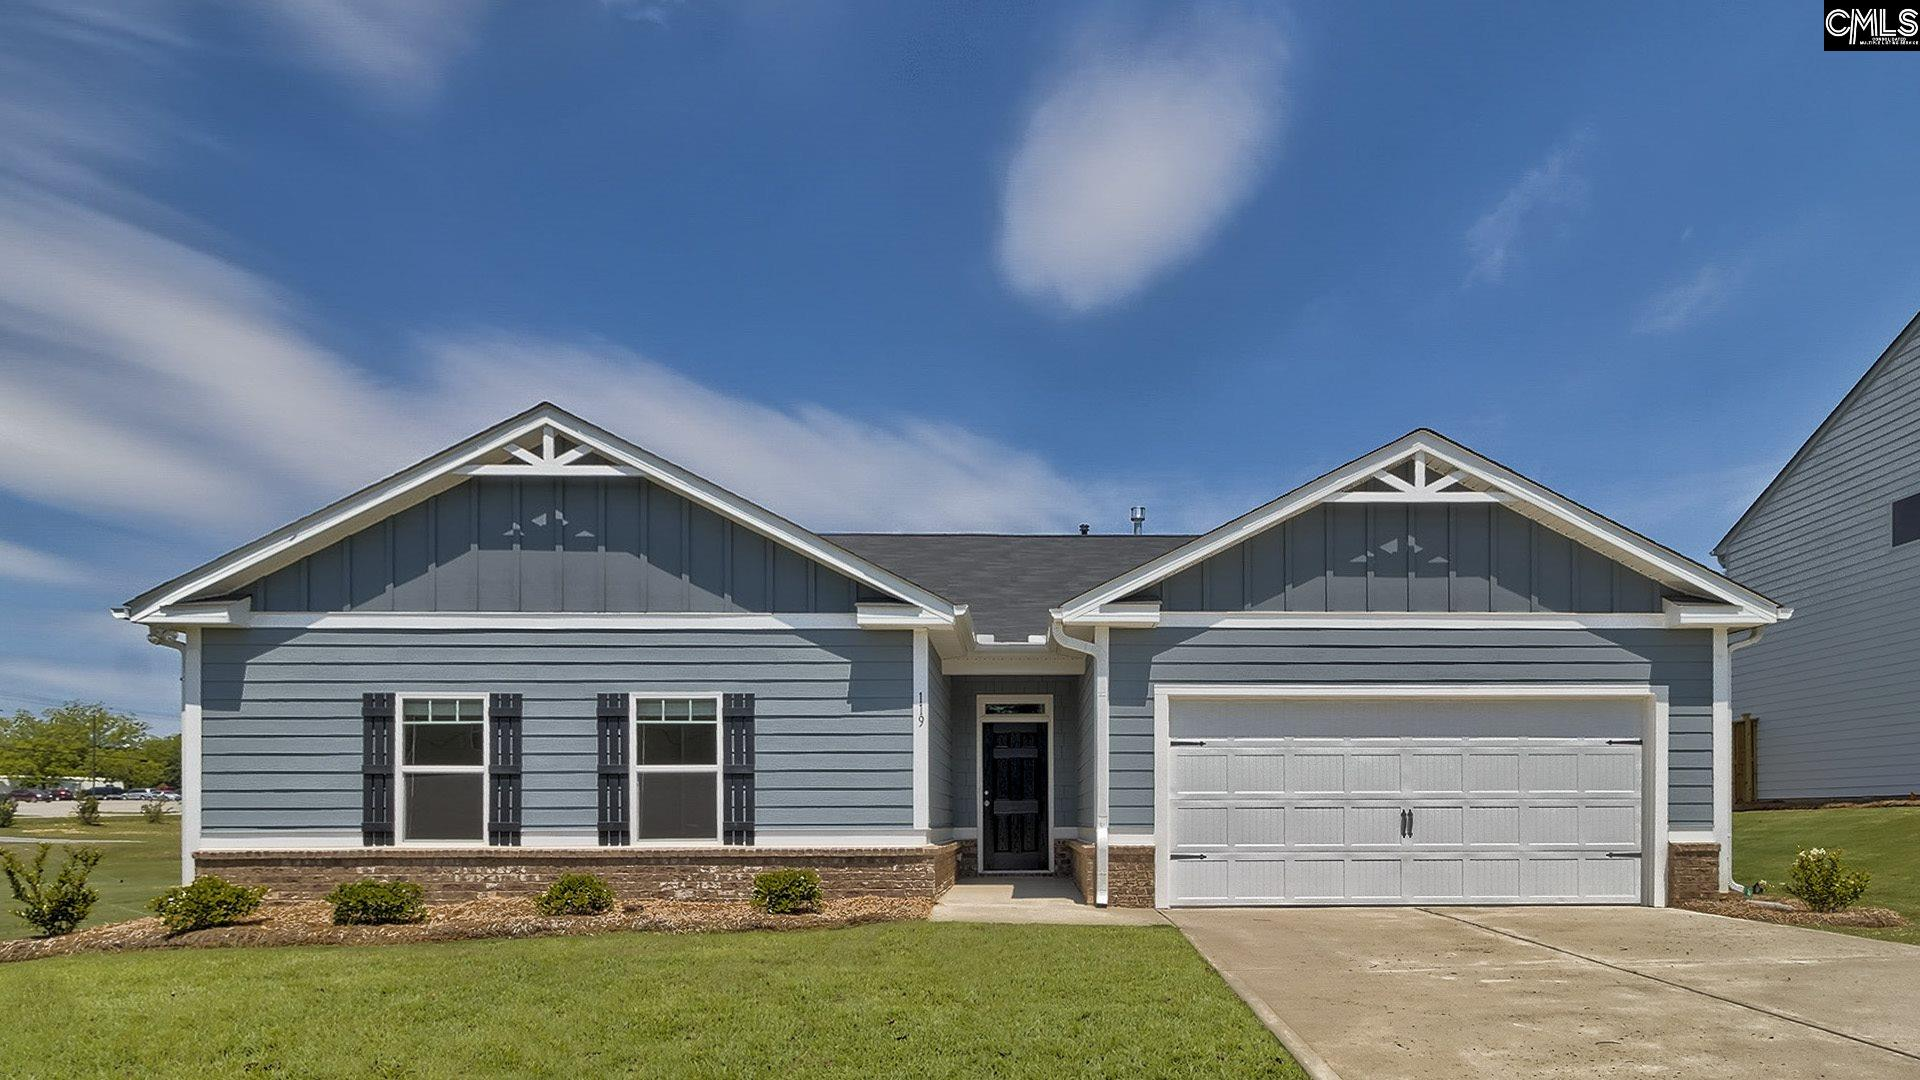 119 Wildlife Grove Lexington, SC 29072